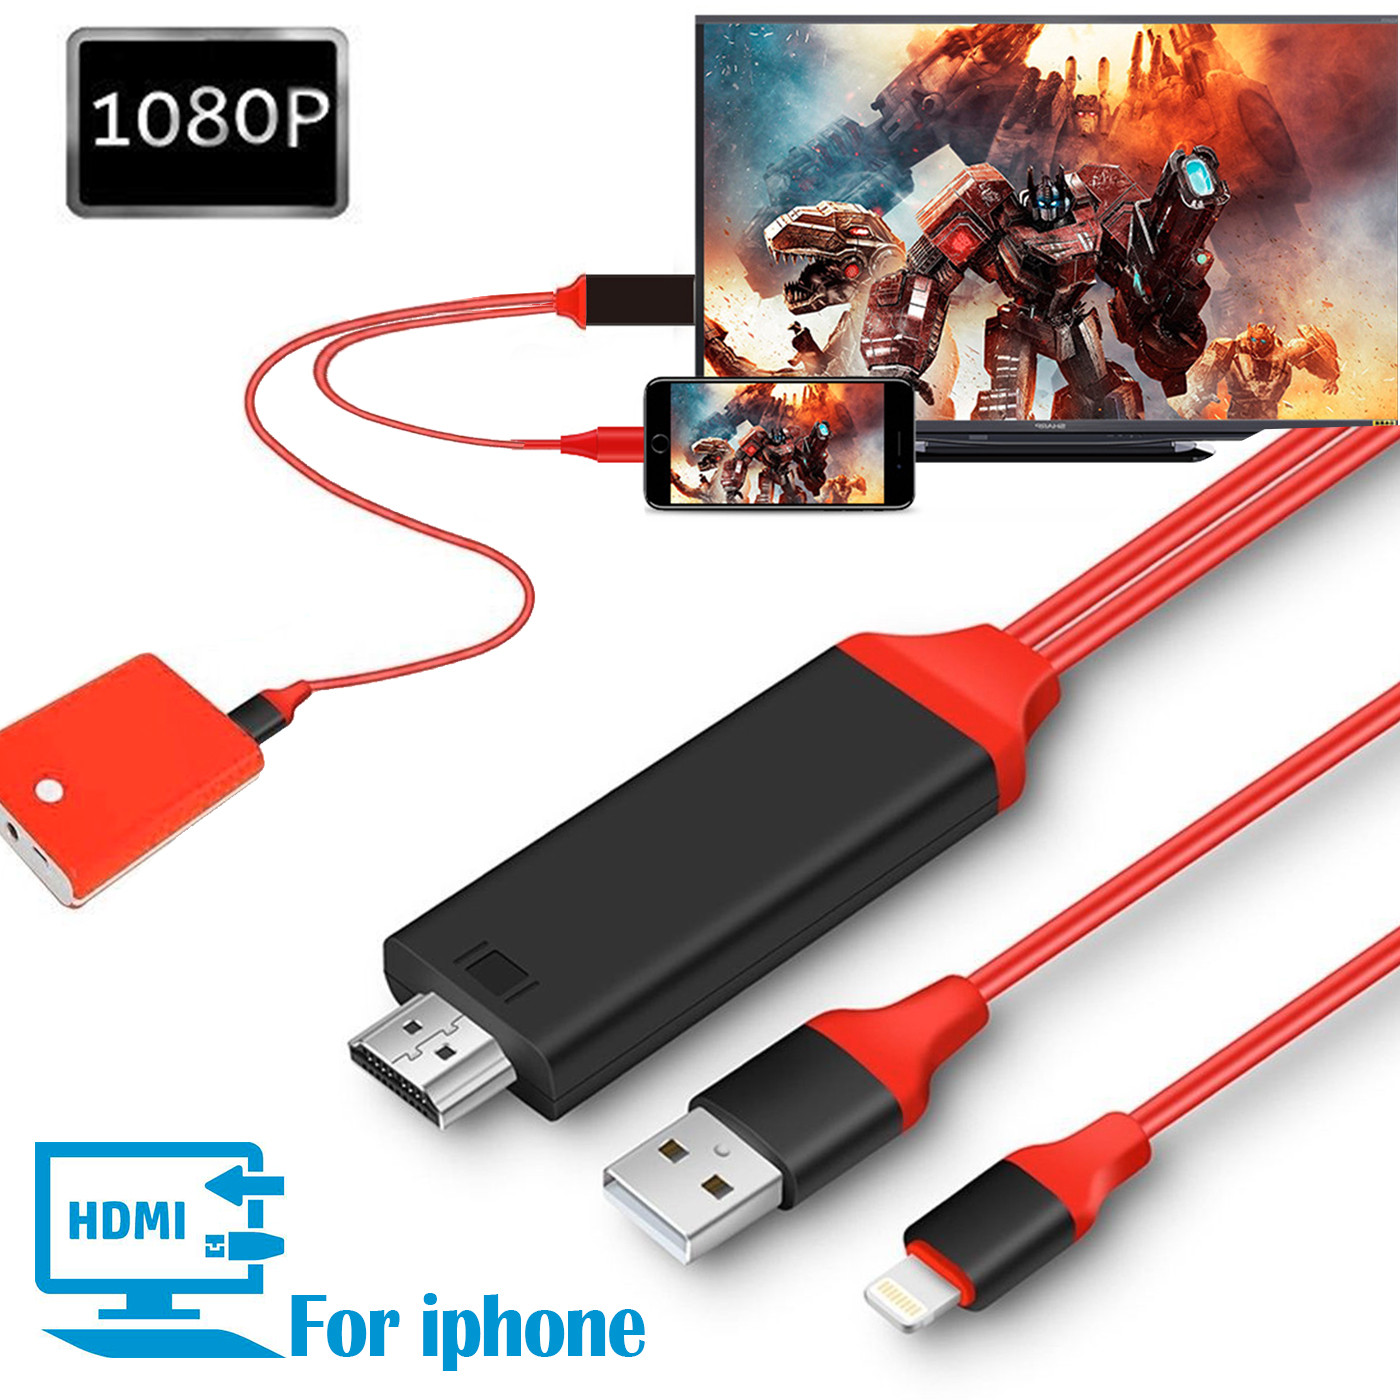 iPad Lightning to HDMI Adapter Cable, 6.6FT 1080P iphone lightning to HDMI Video AV Cable Connector Conversion HDTV Adapter for iPhone 6 7 8 X/iPad/iPod